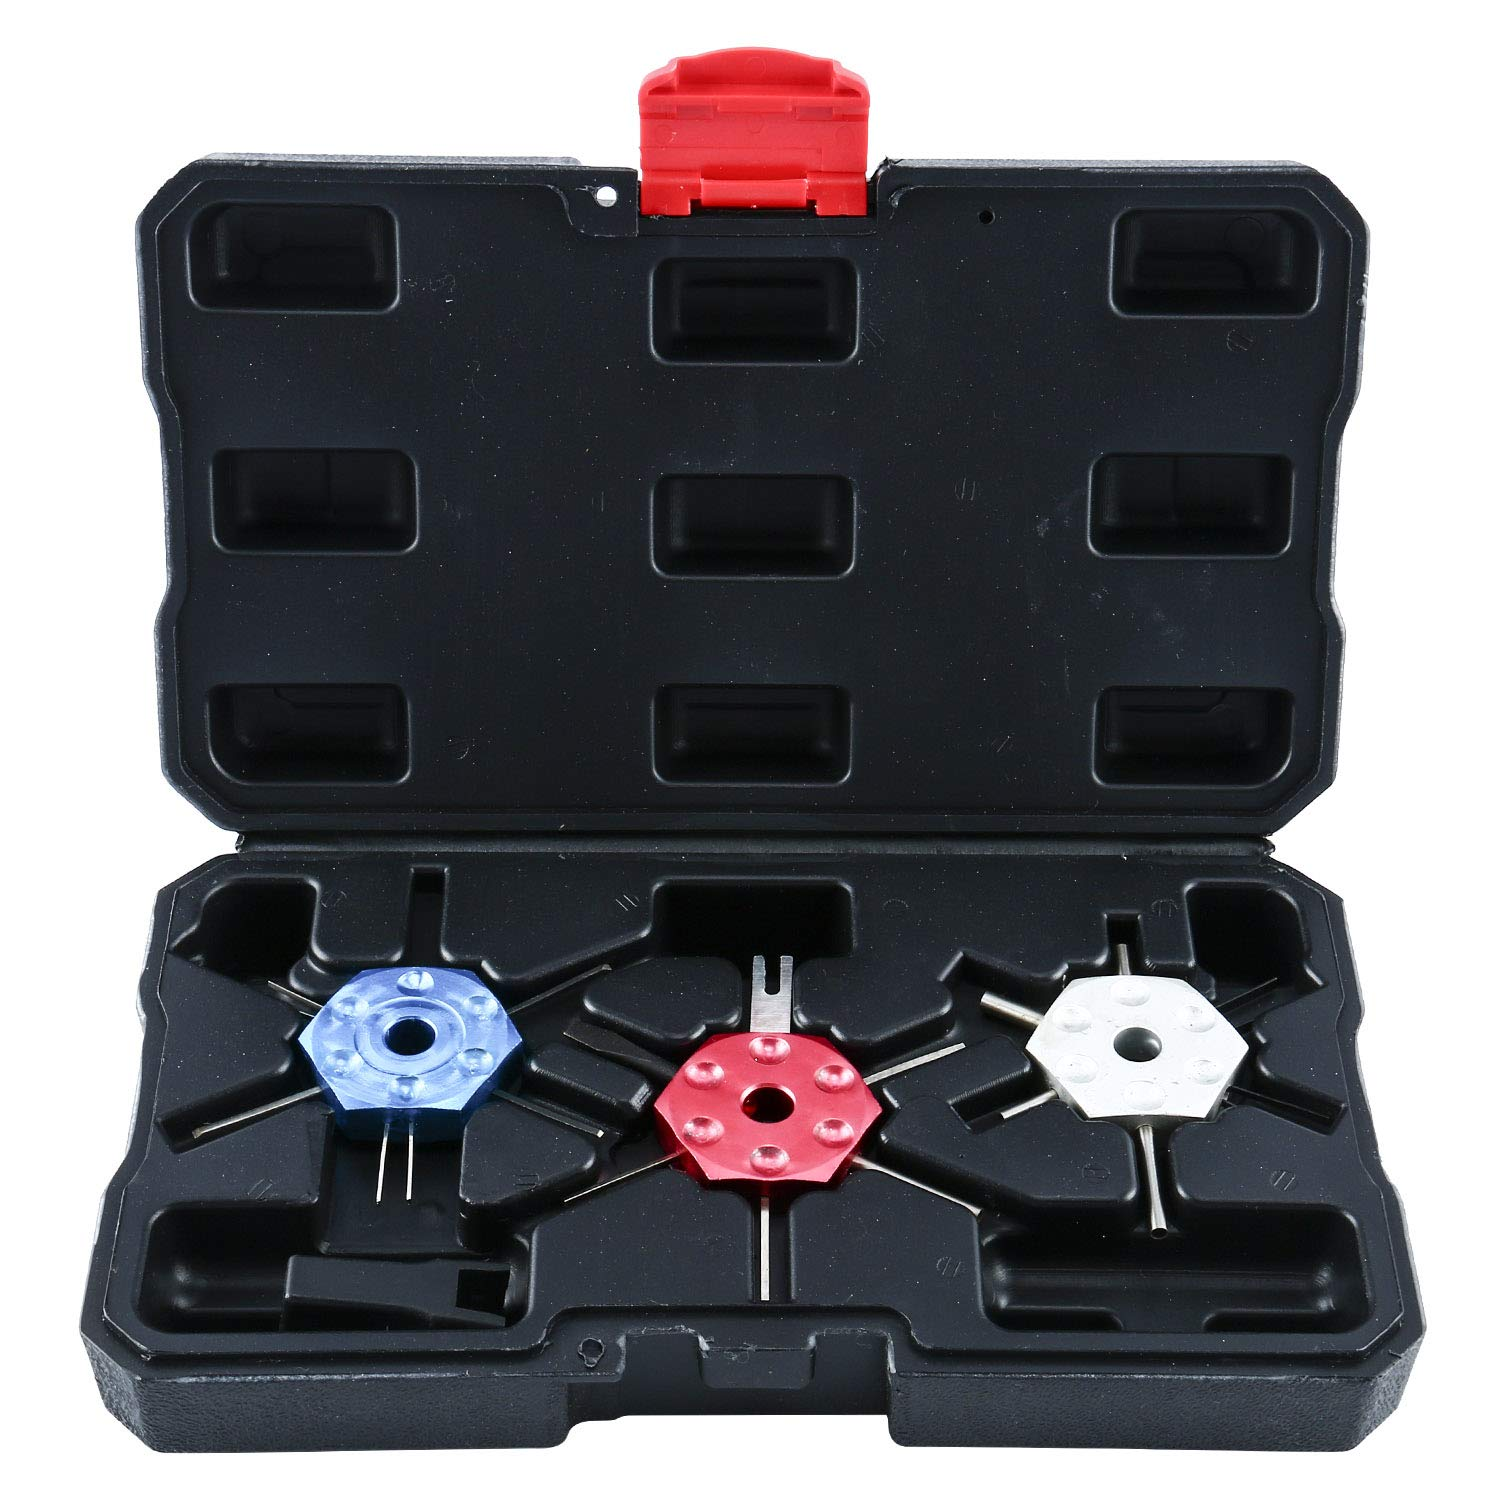 Wire Terminal Tool Kit - 3 Pack Wire Terminal Removal & Repair Tool freebirdtrading